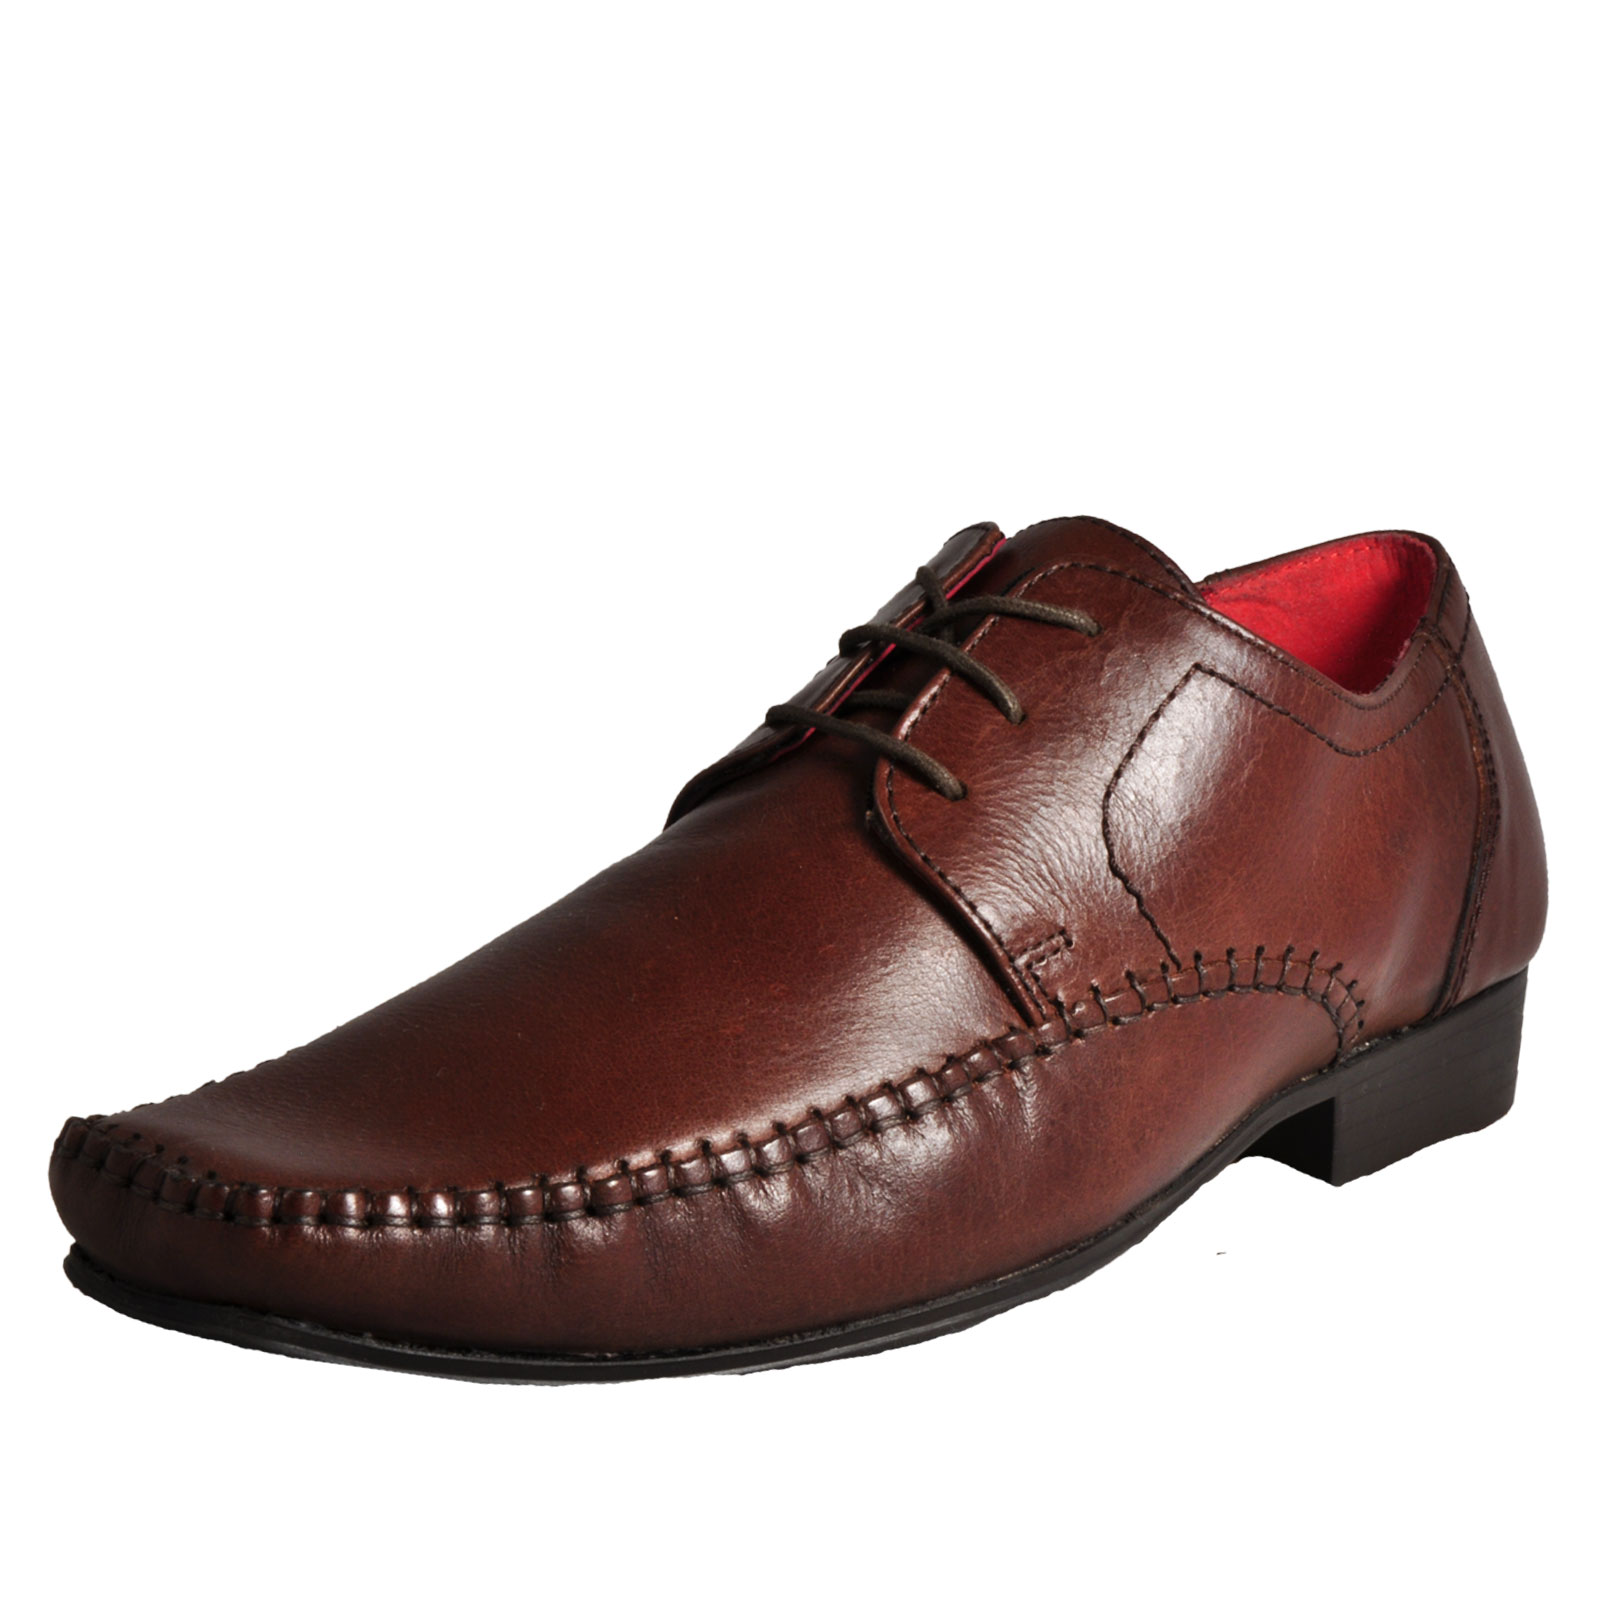 Details about Red Tape Ching Men s Formal Smart Dress Leather Lace Up Shoes  Brown dd7088c950f1